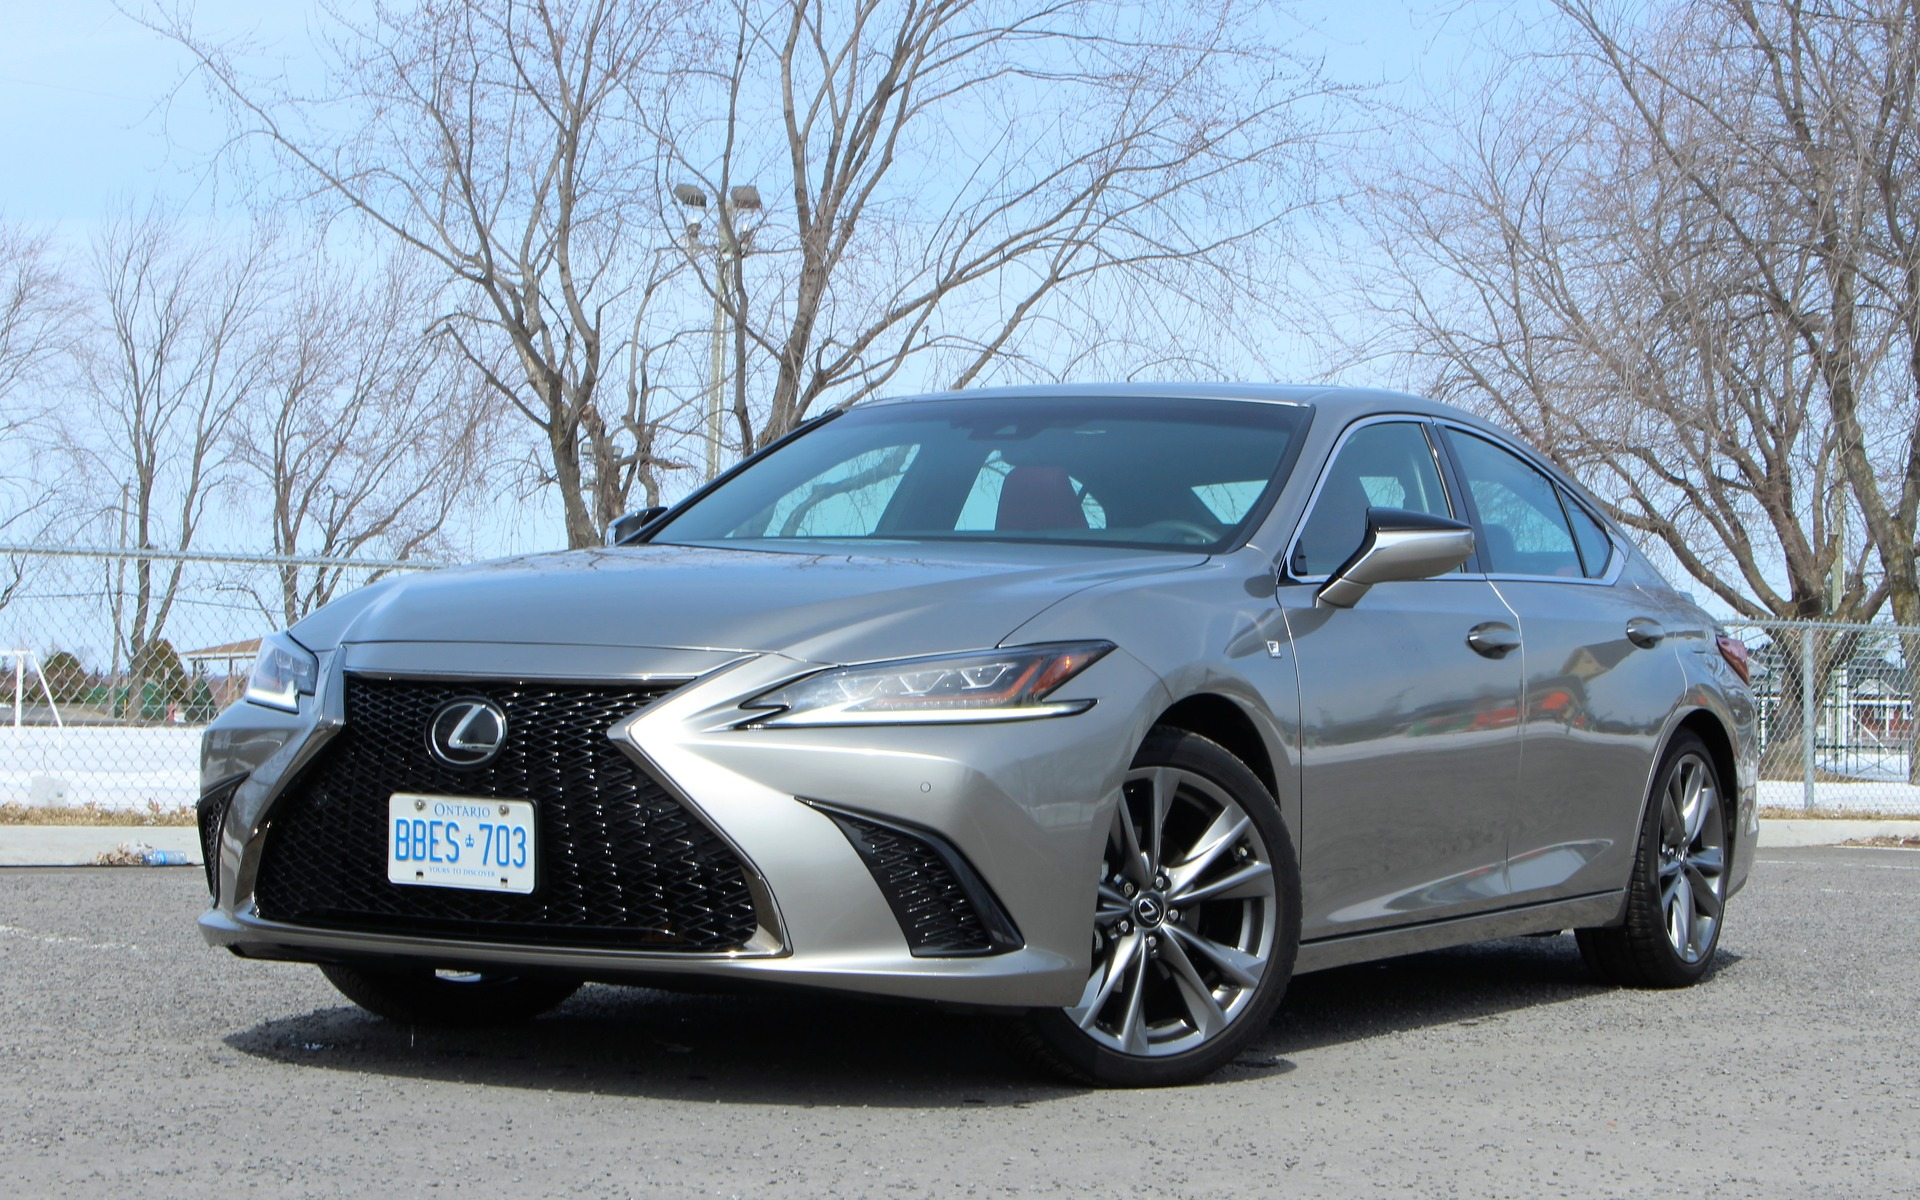 2019 Lexus ES 350: Still the One - The Car Guide